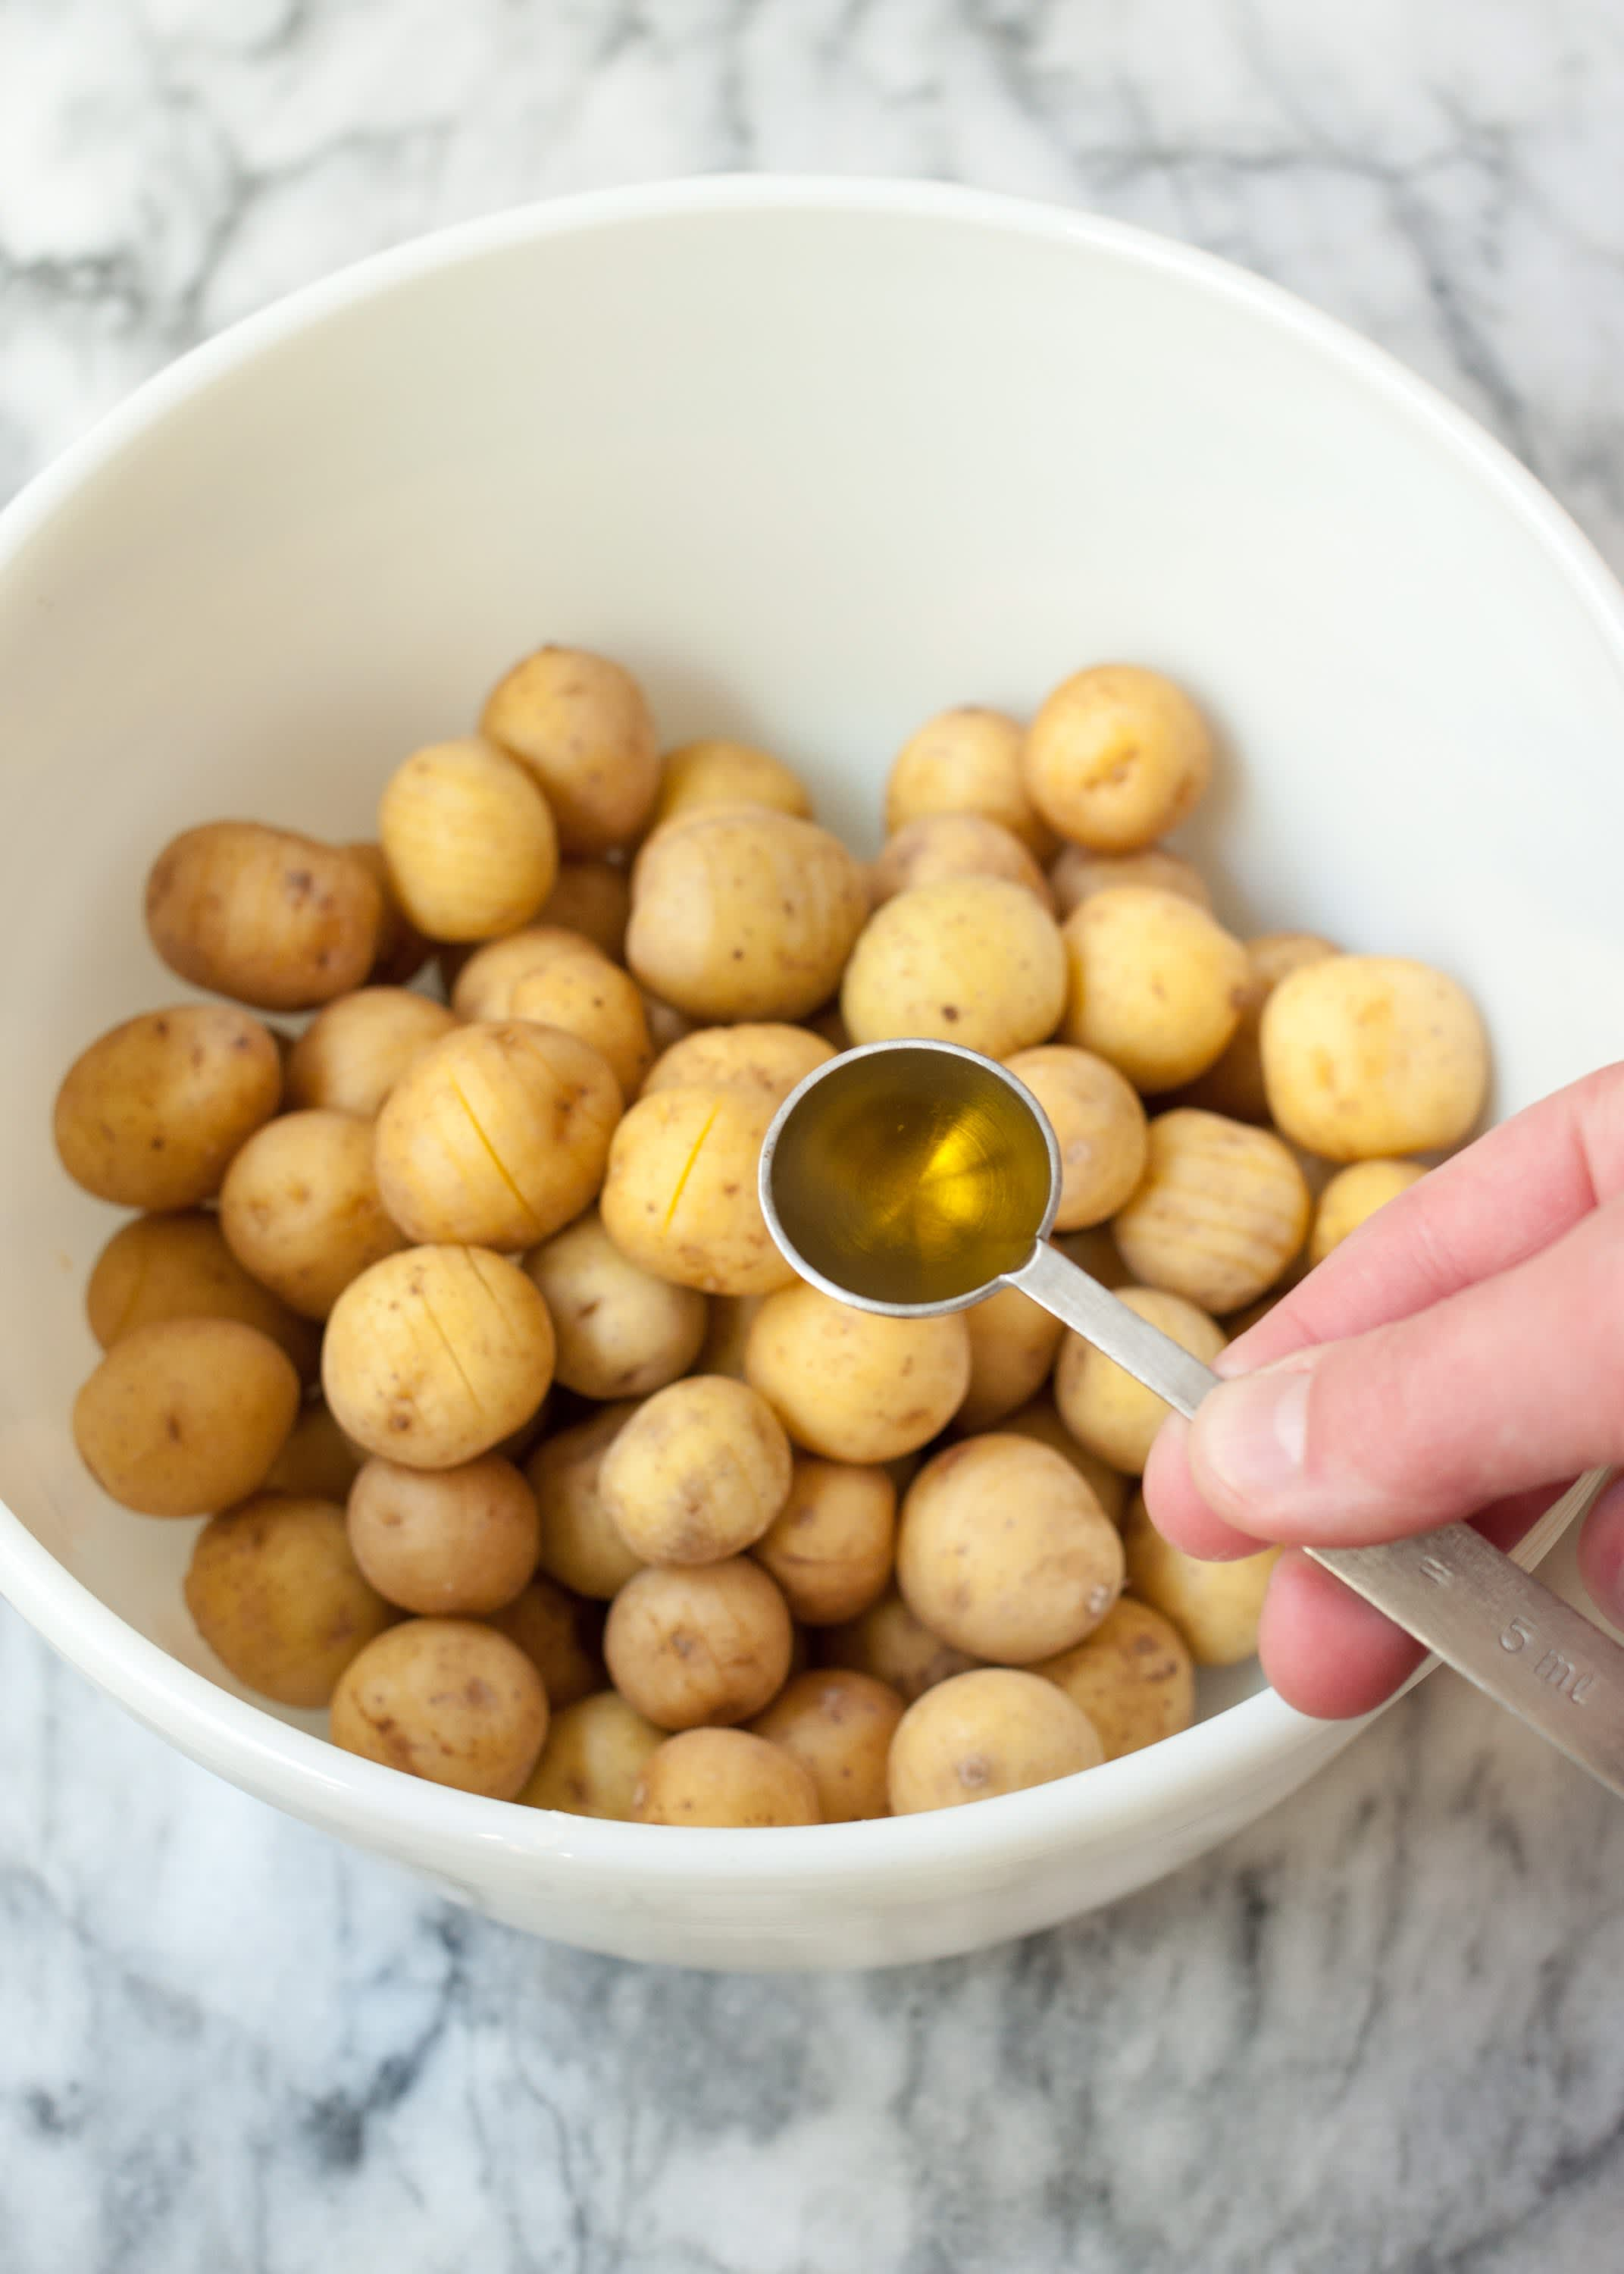 How To Make Hasselback Tater Tots: gallery image 6